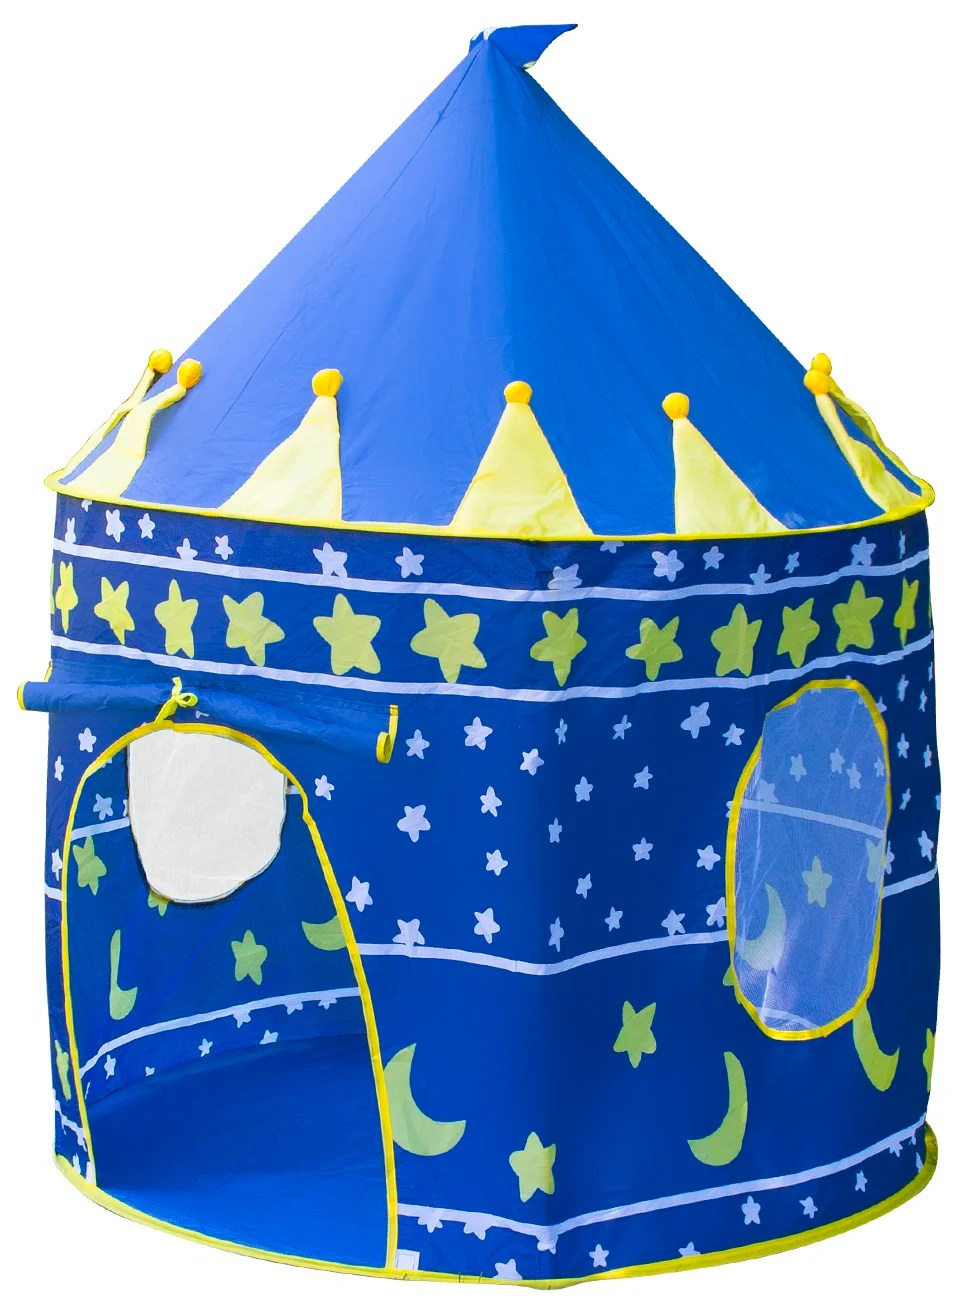 Kids Play Tent Kids Castle Play Tent With Carrying Bag